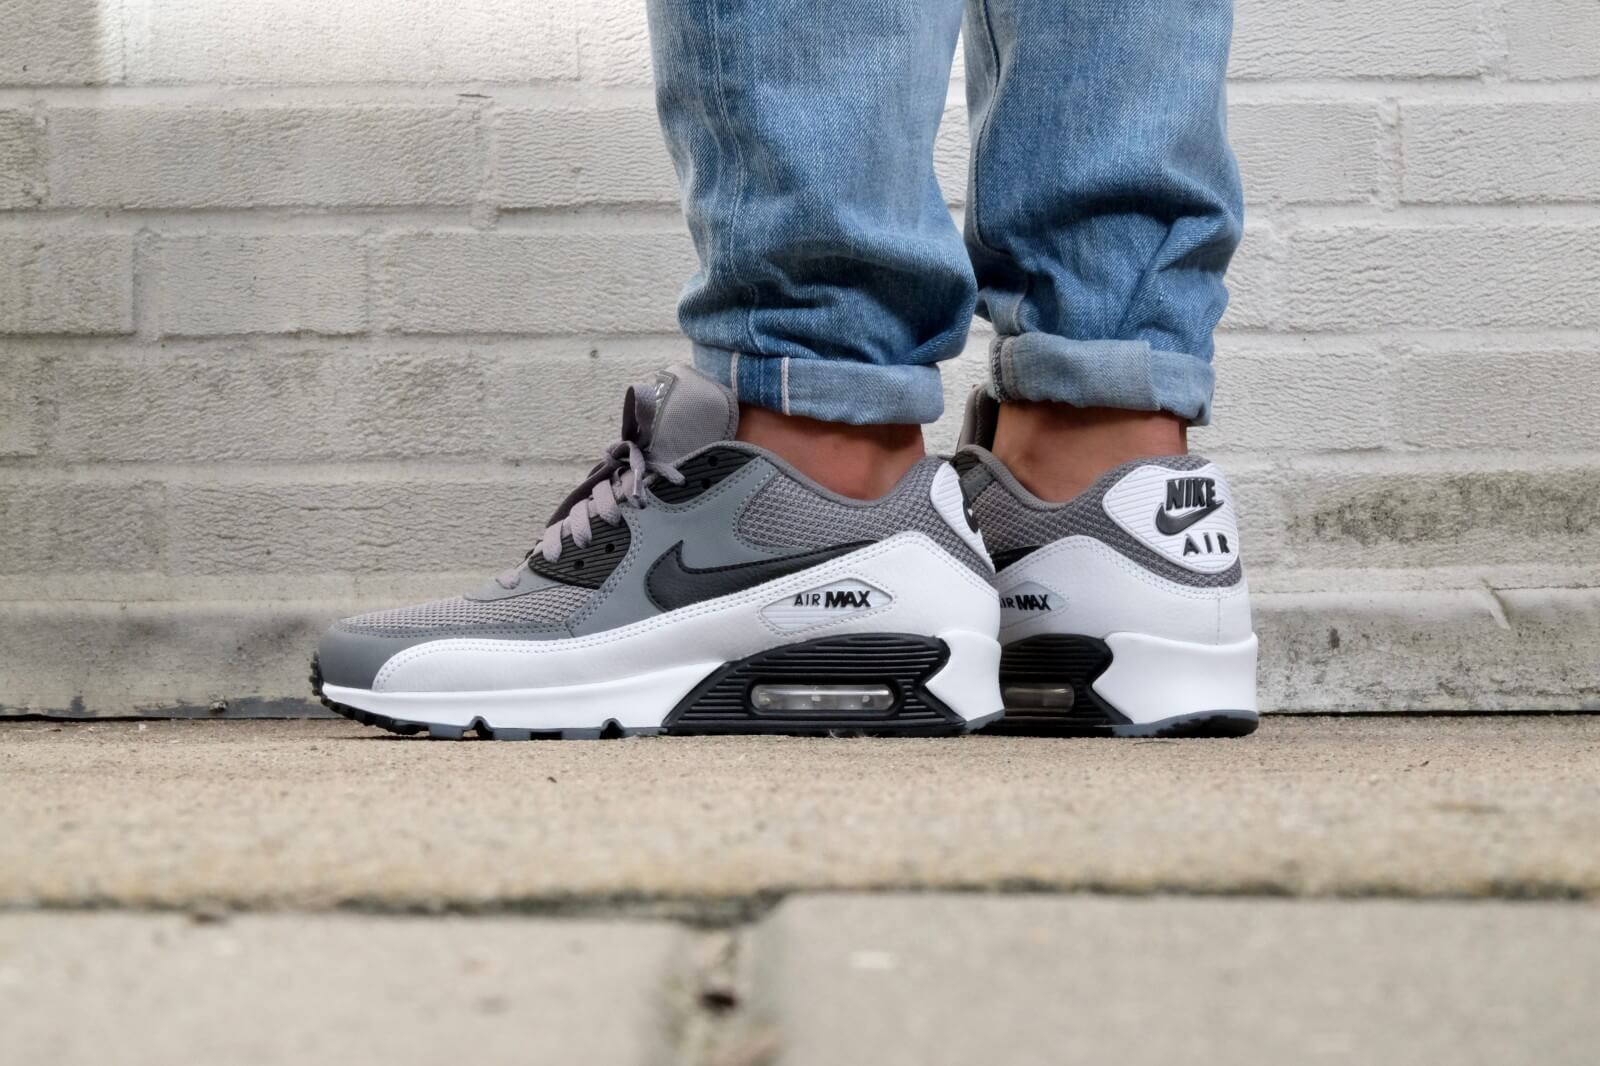 Nike Air Max 90 Essential Cool grey Black White 537384 057